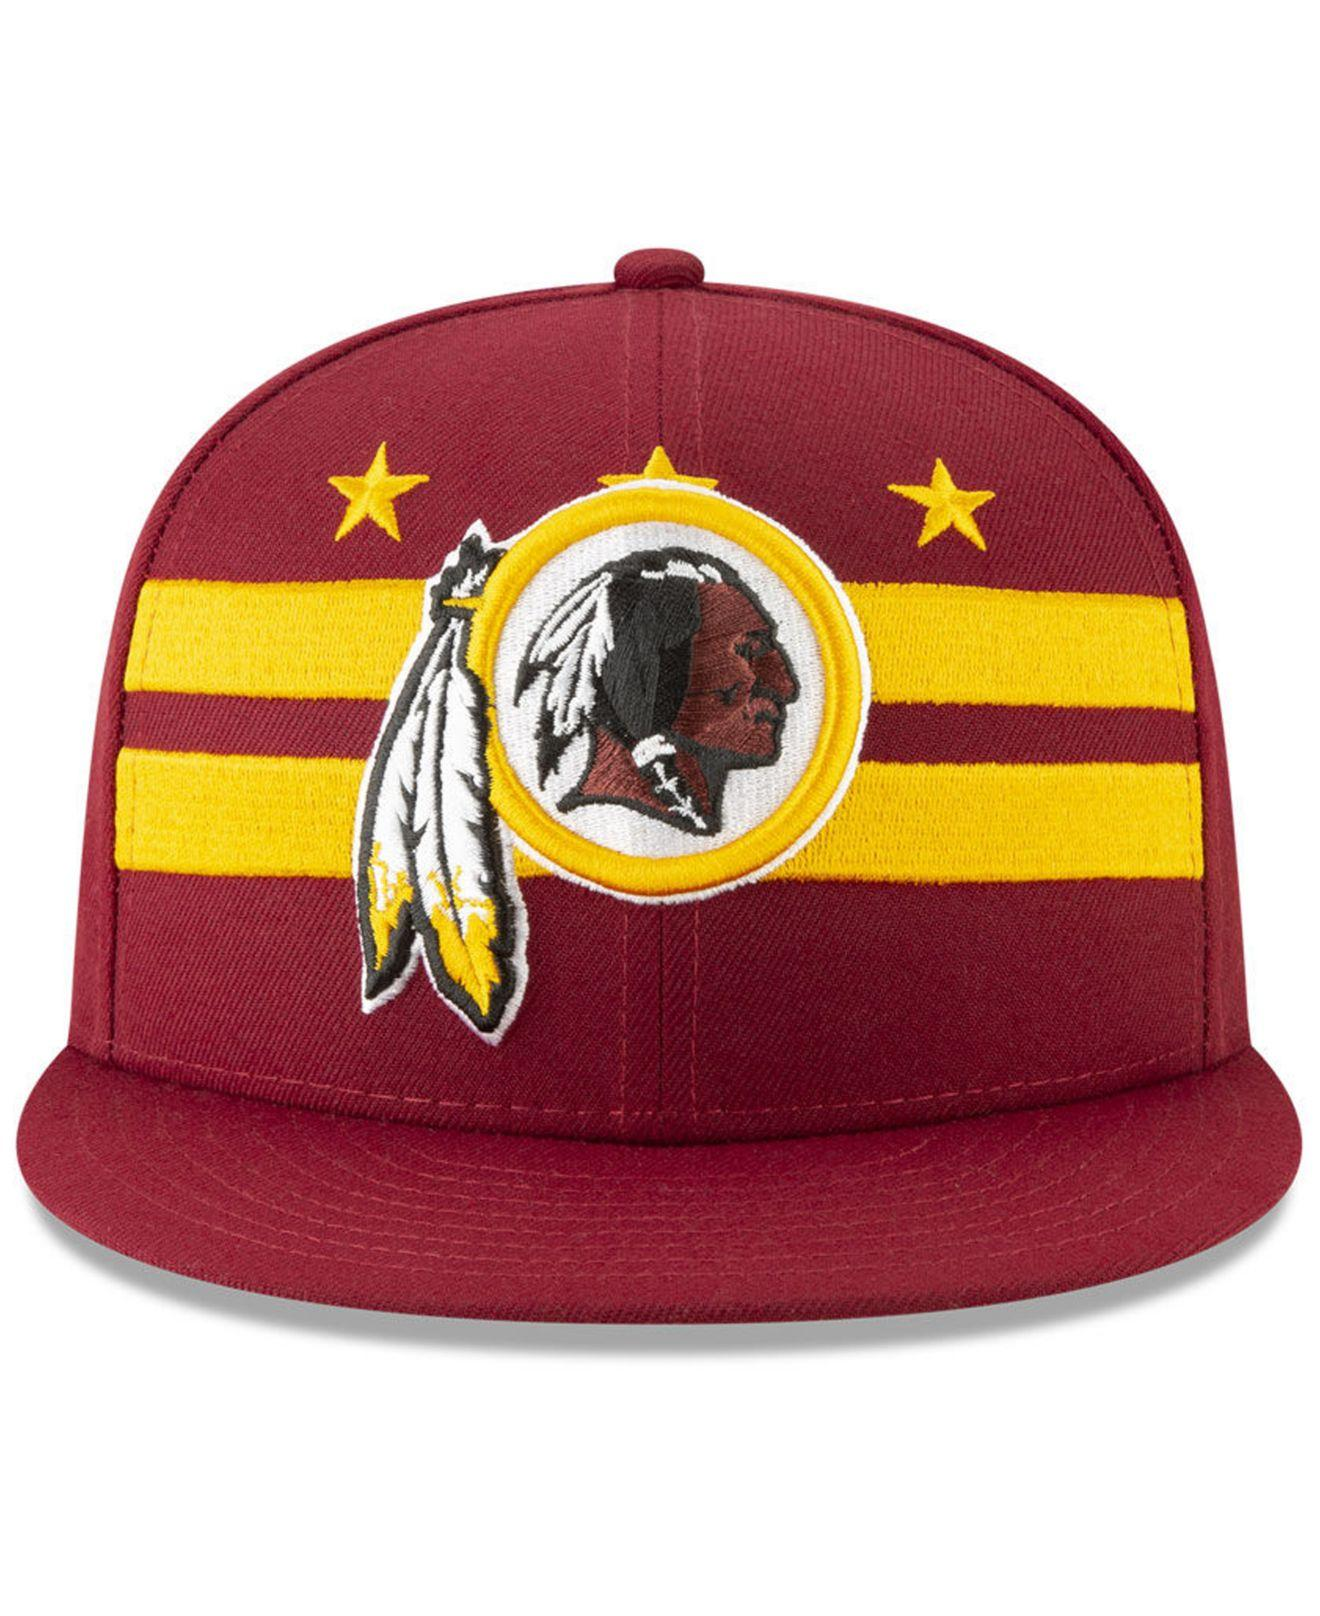 brand new c43e5 ebe94 Lyst - KTZ Washington Redskins 2019 Draft 59fifty Fitted Cap for Men